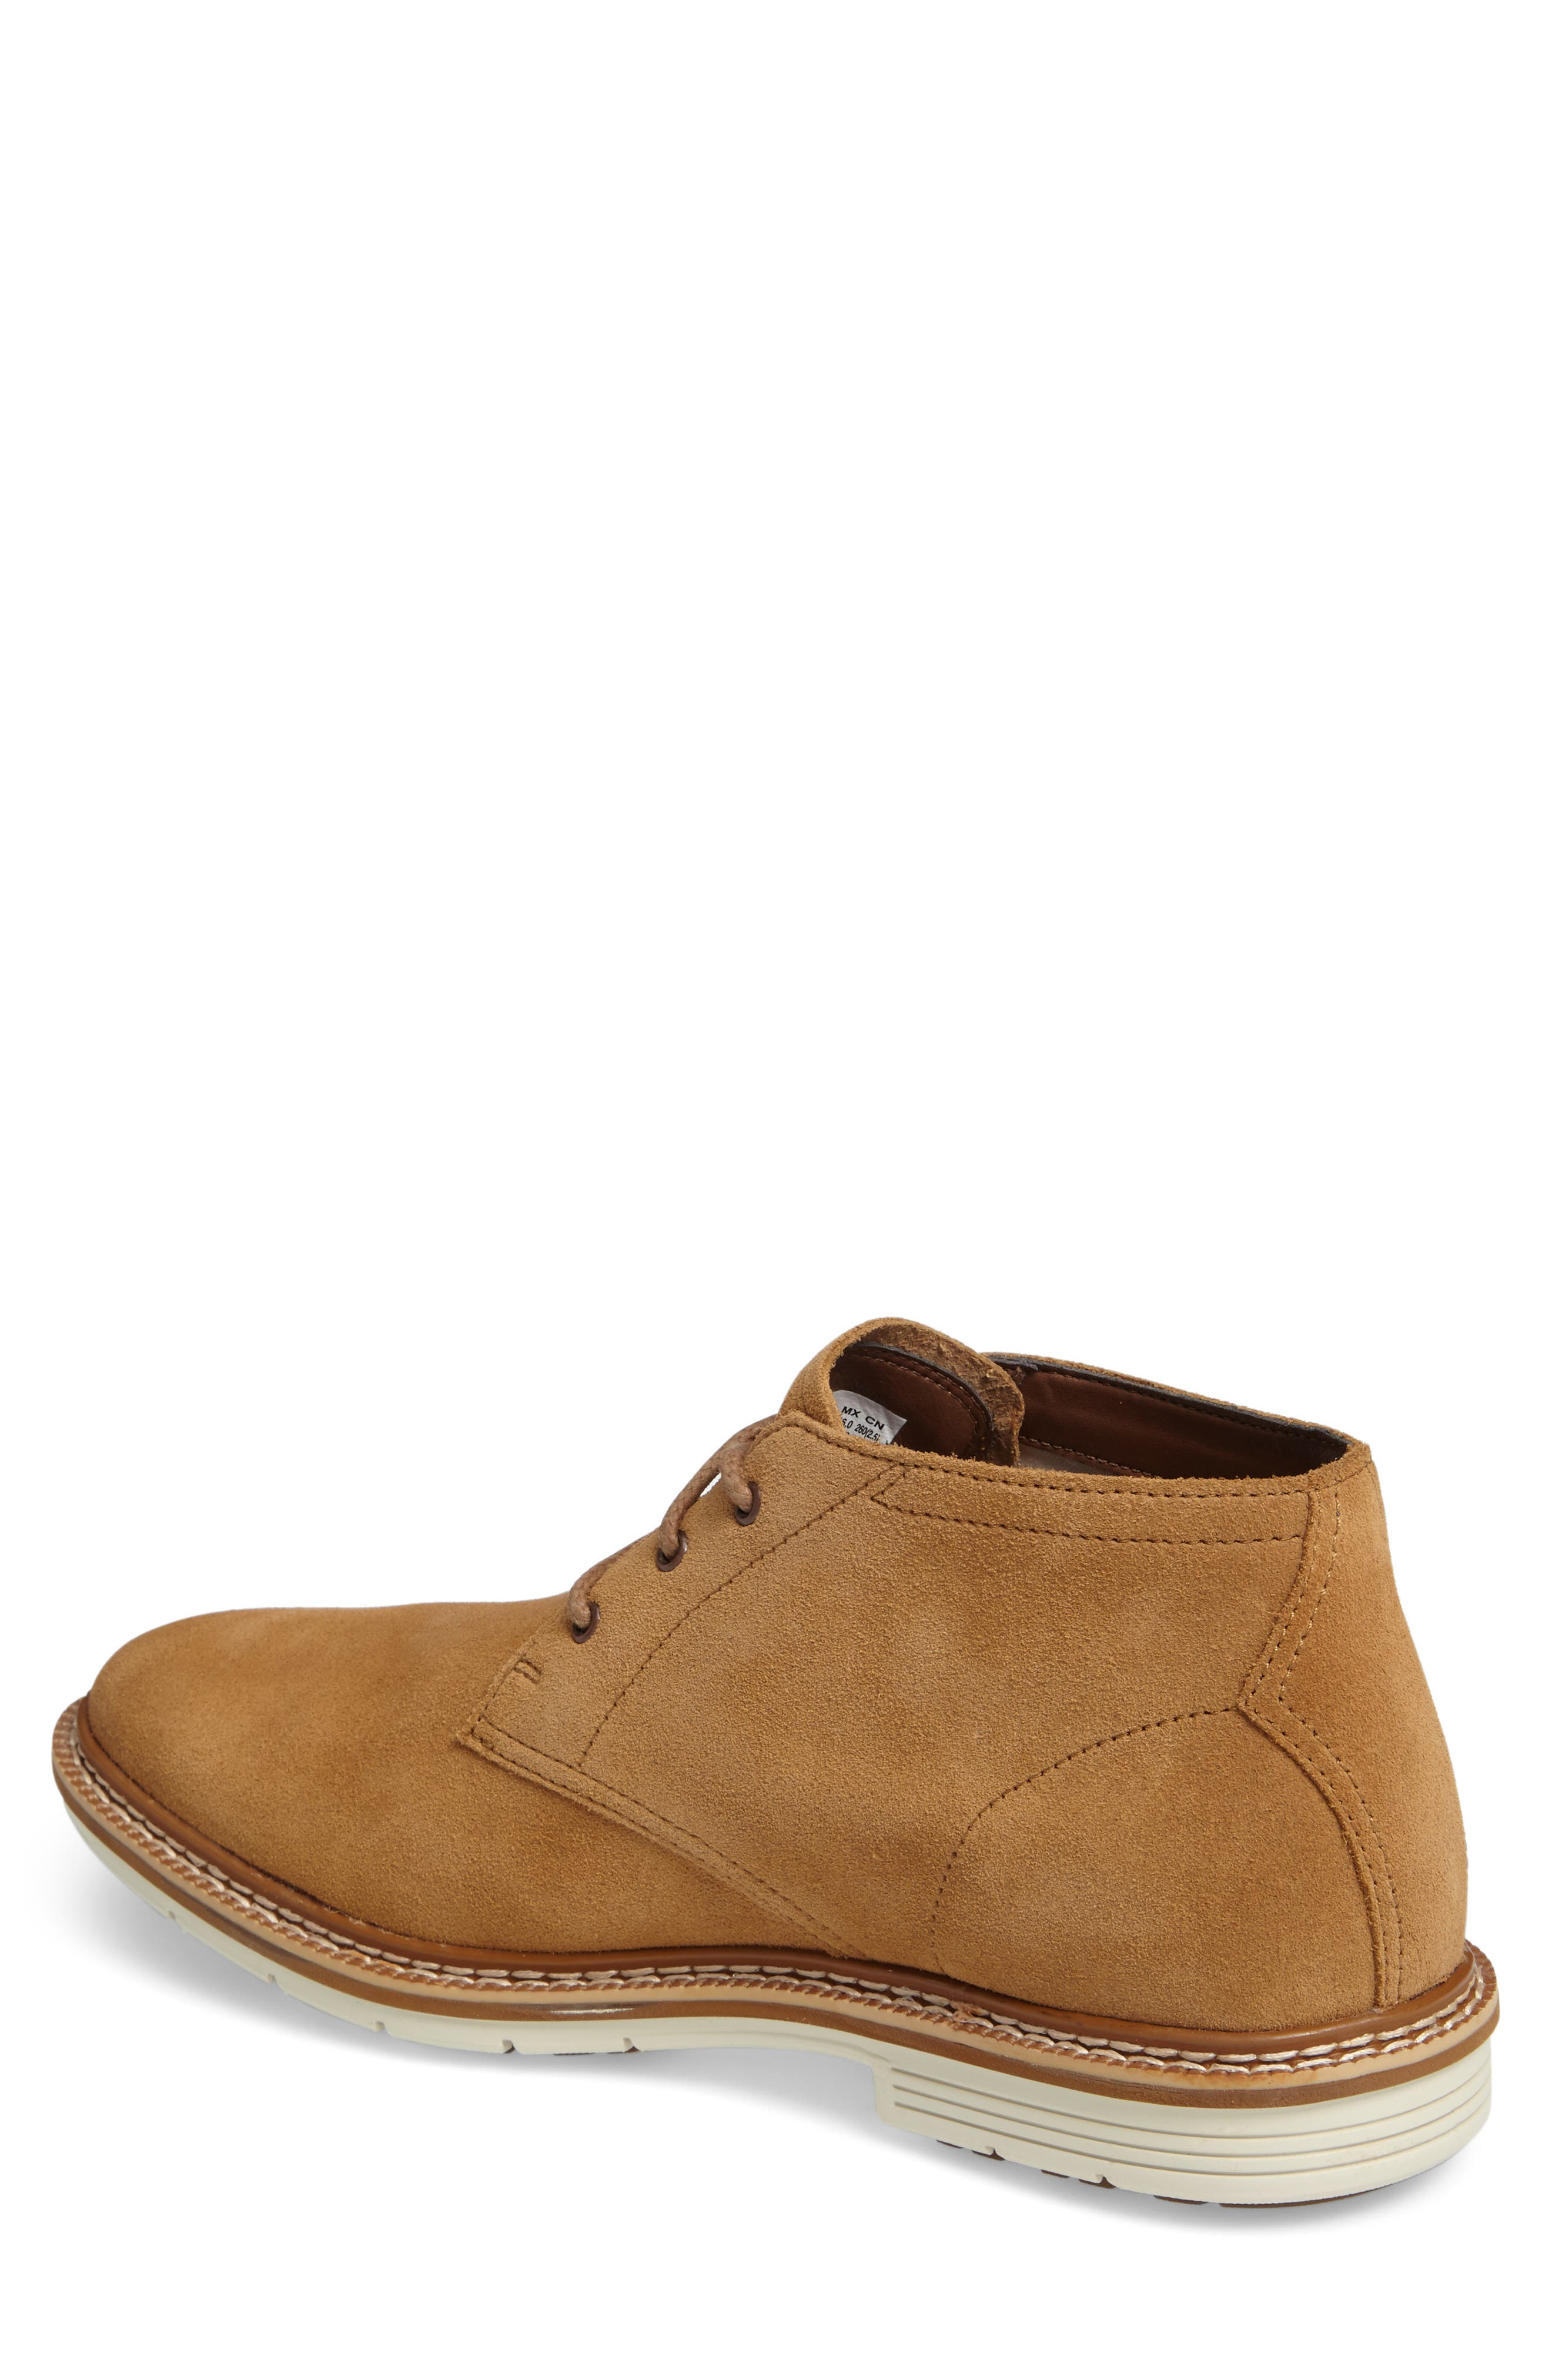 Alternate Image 2  - Timberland Naples Trail Chukka Boot (Men)